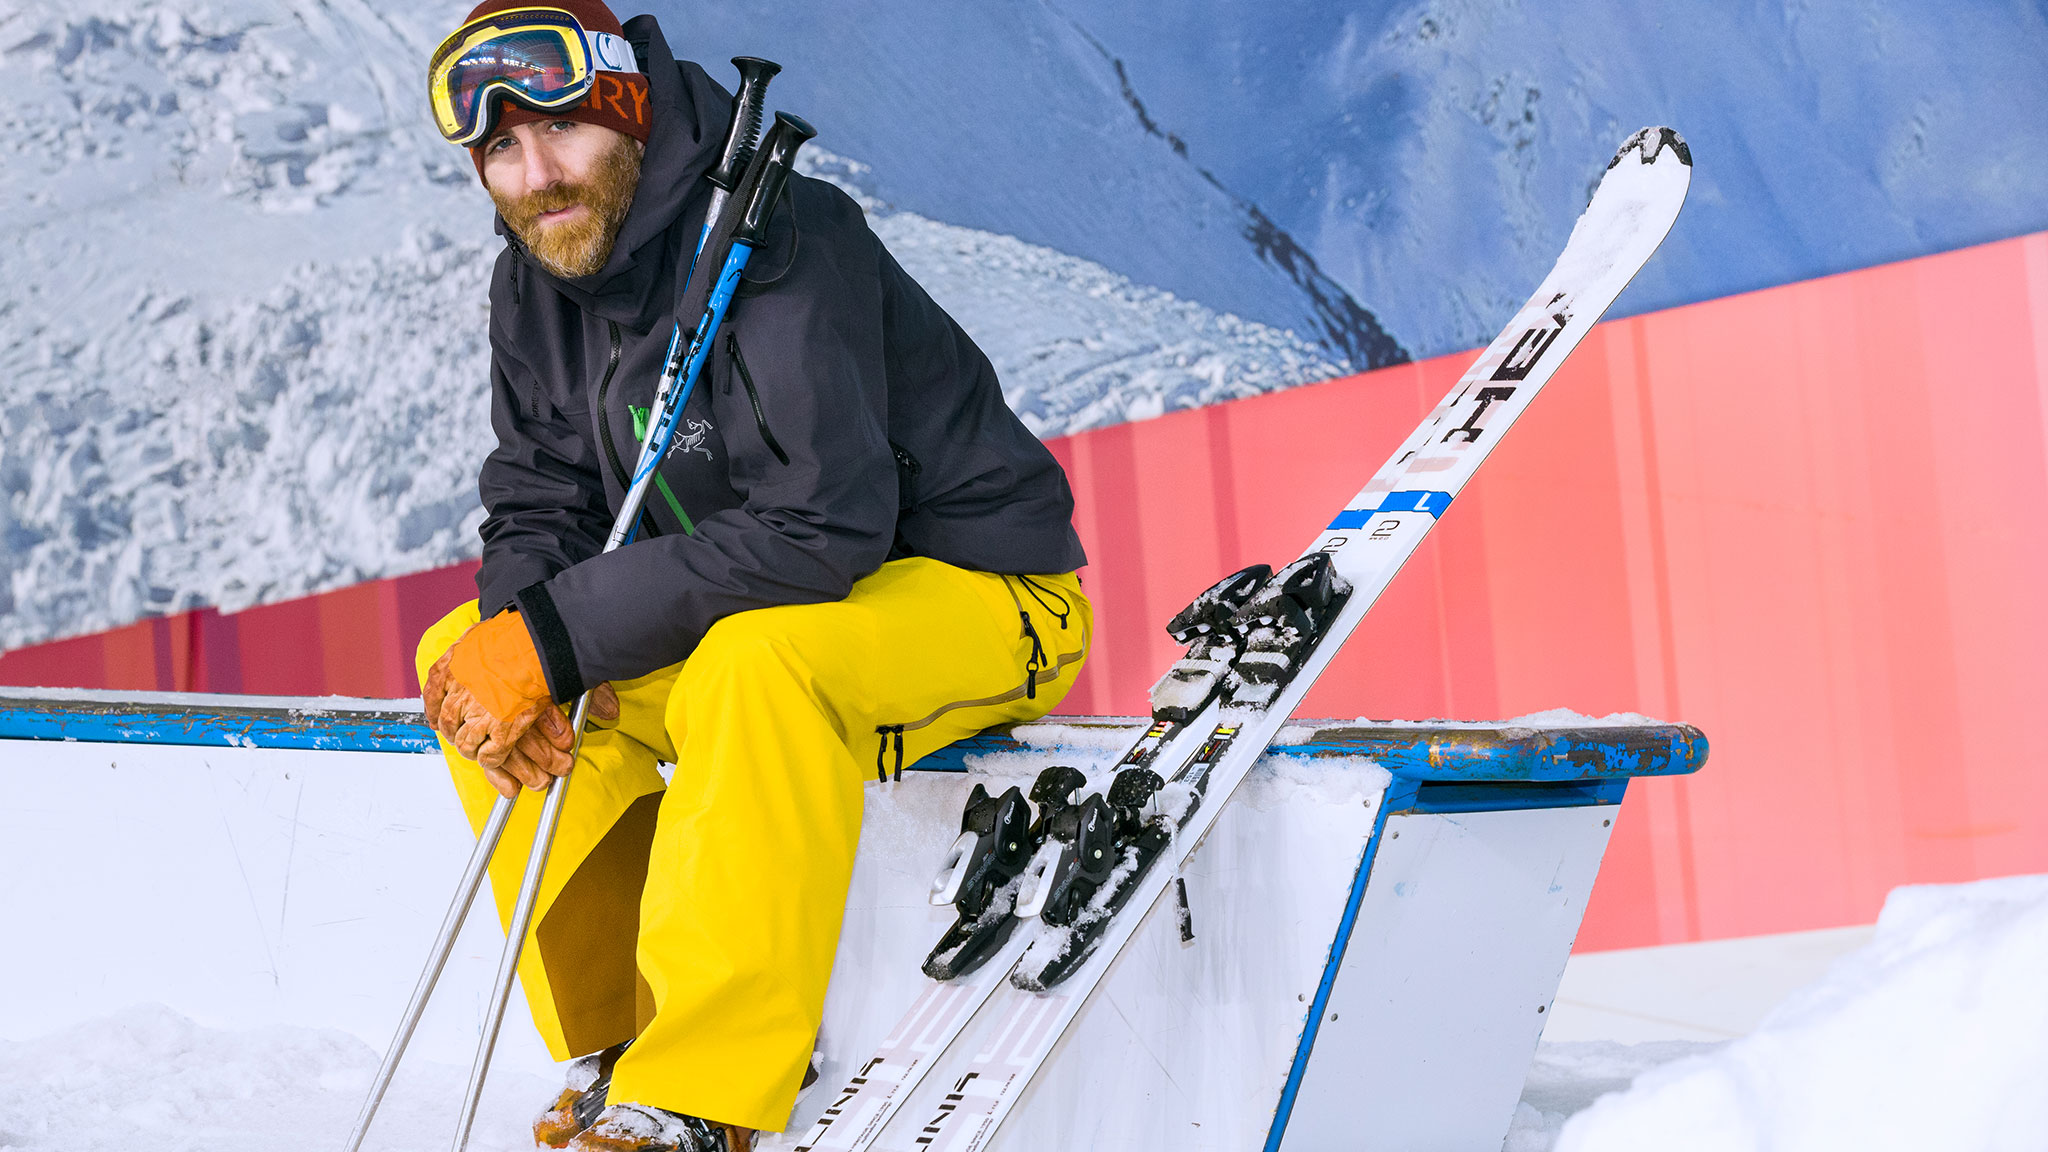 ab253e2c50 Latest skiwear designs put to the test | Financial Times